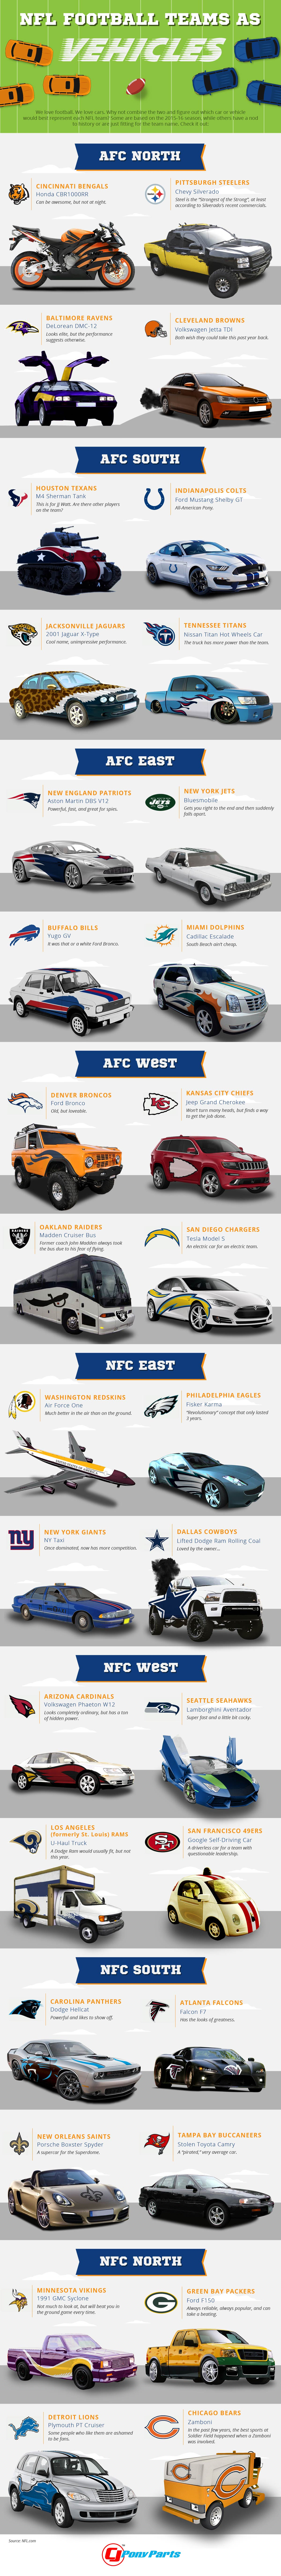 nfl teams as cars - nfl infographic